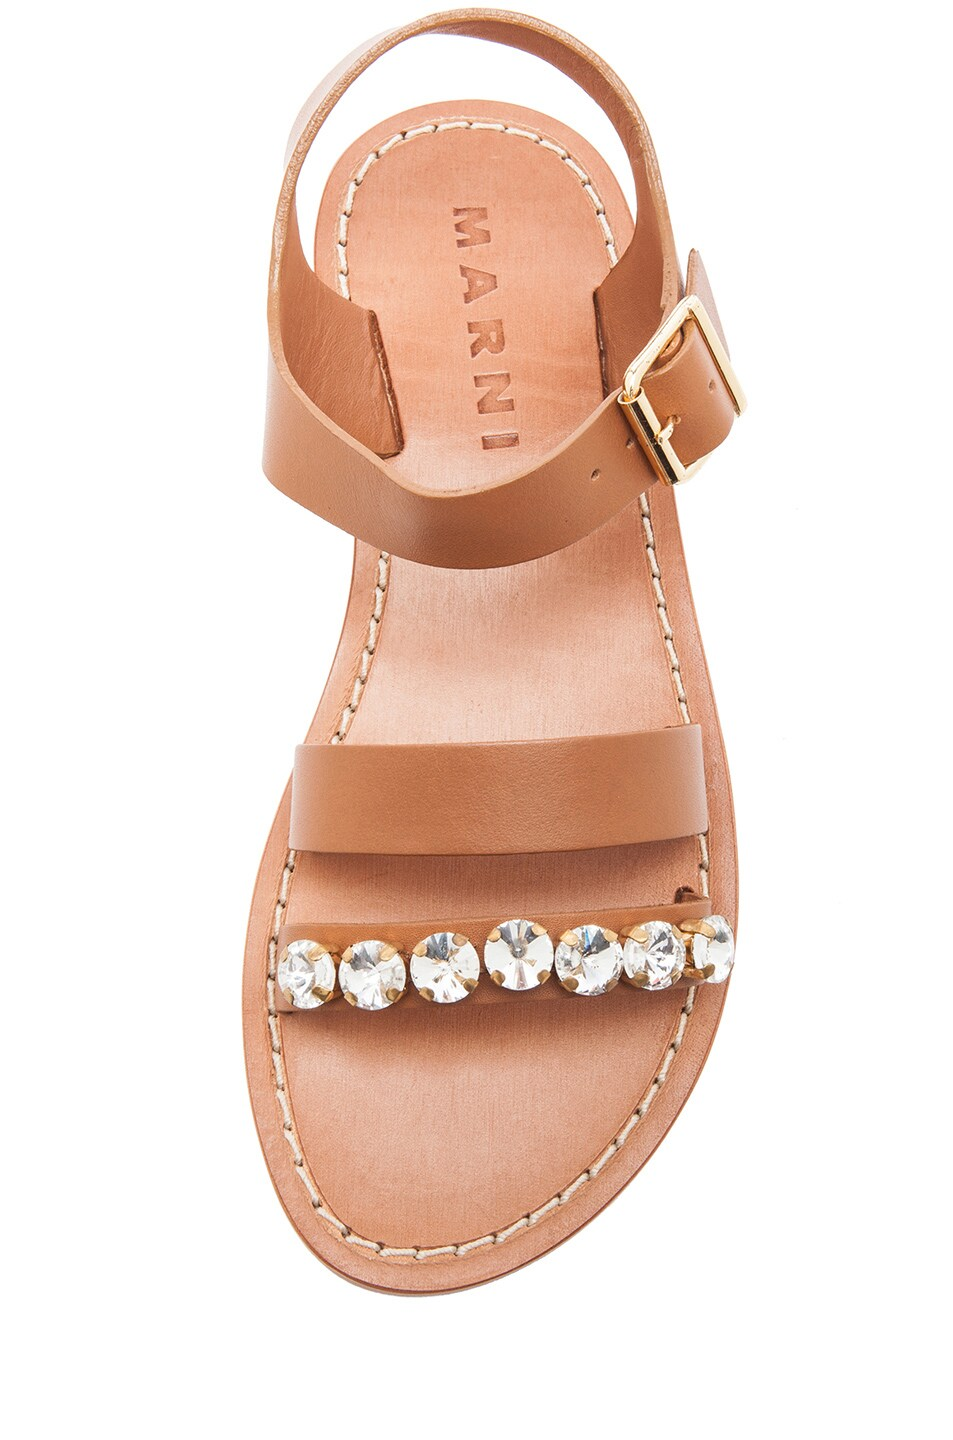 Image 4 of Marni Embellished Leather Sandals with Small Stones in Caramel